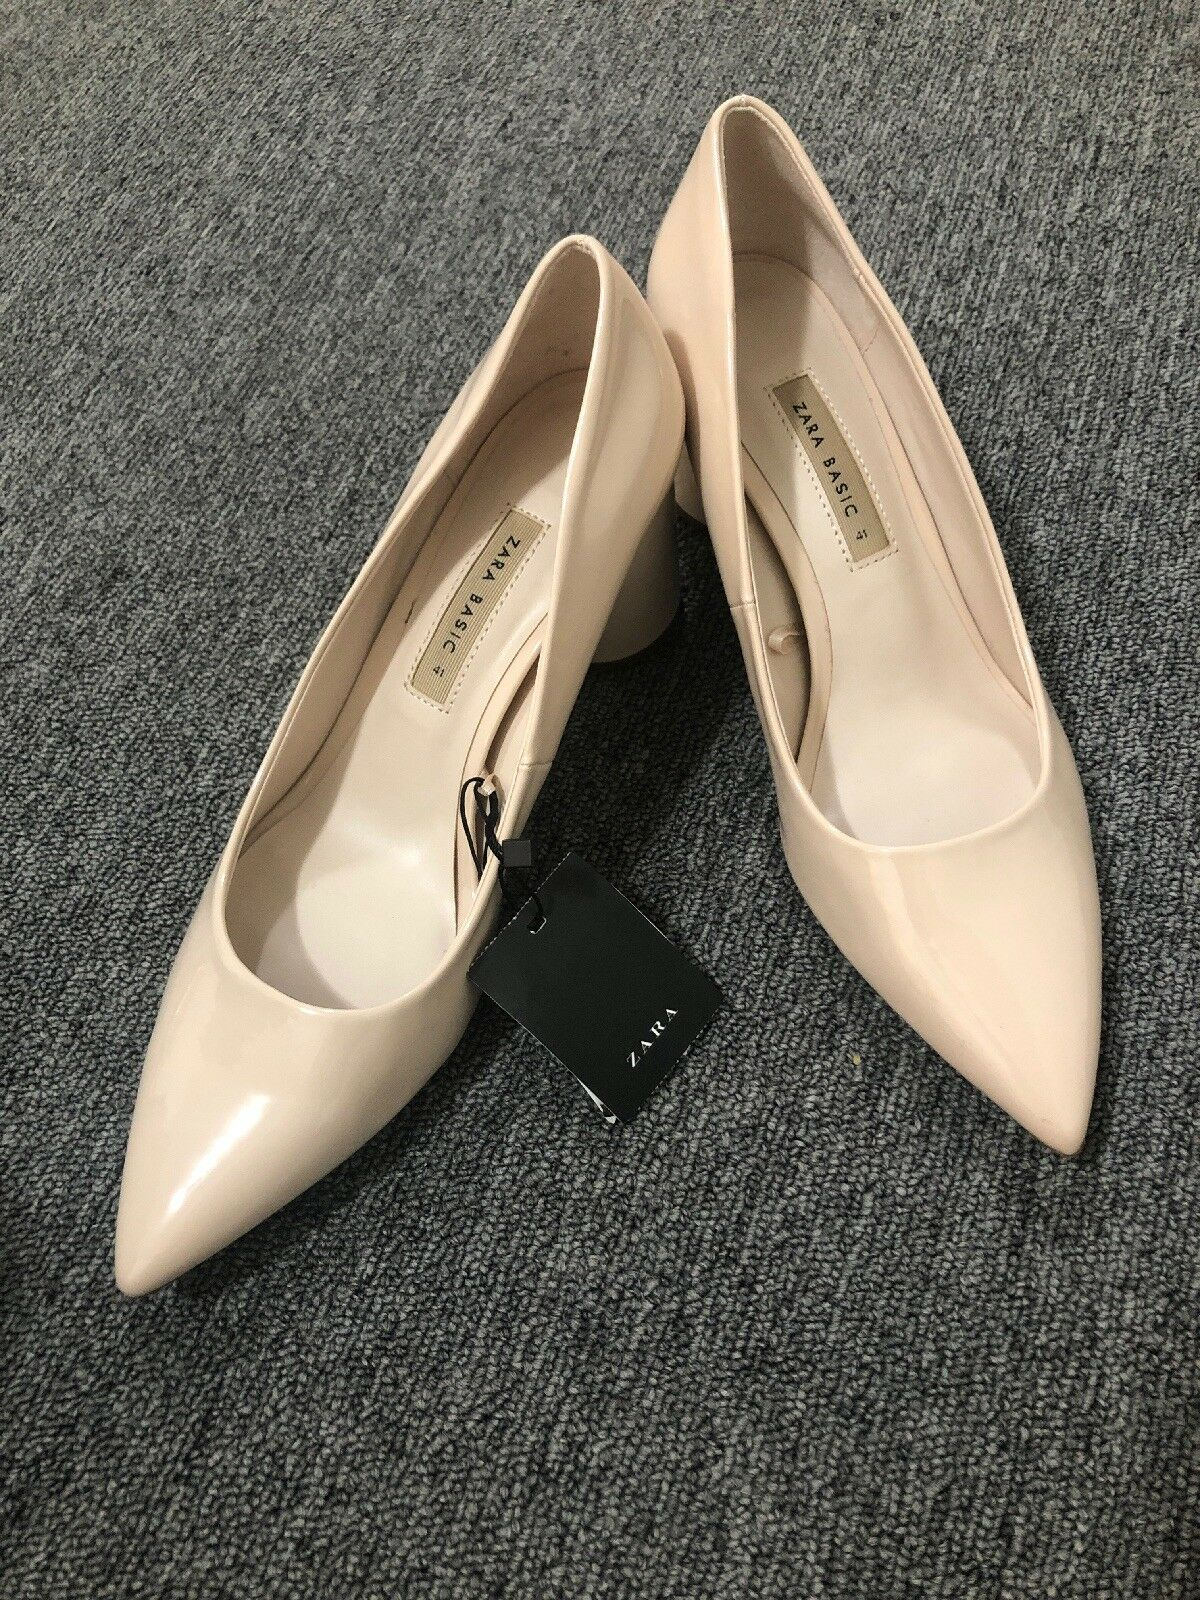 Zara Woman Nude Patent Pointed Toe Toe Toe Pumps Block Heels Size 10 NWT Prom Party b84164